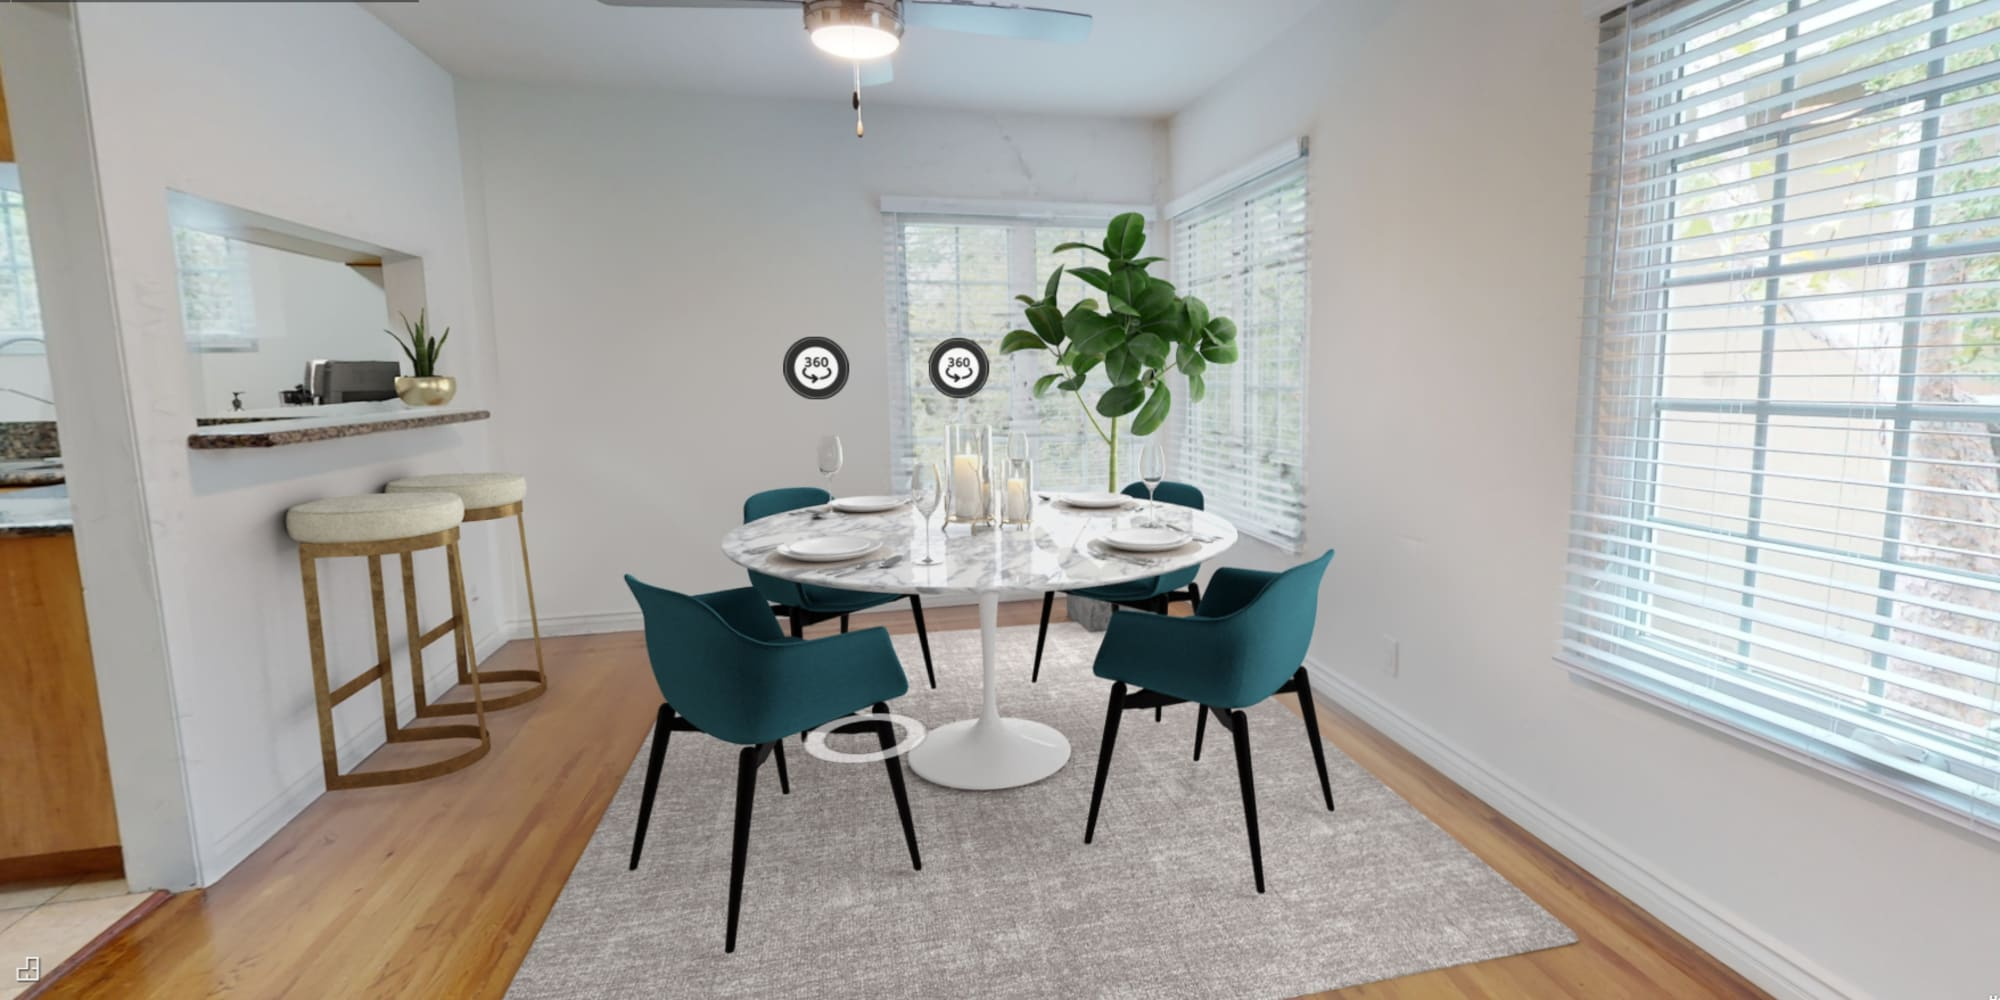 Well-furnished dining area in a model home at Sunset Barrington Gardens in Los Angeles, California